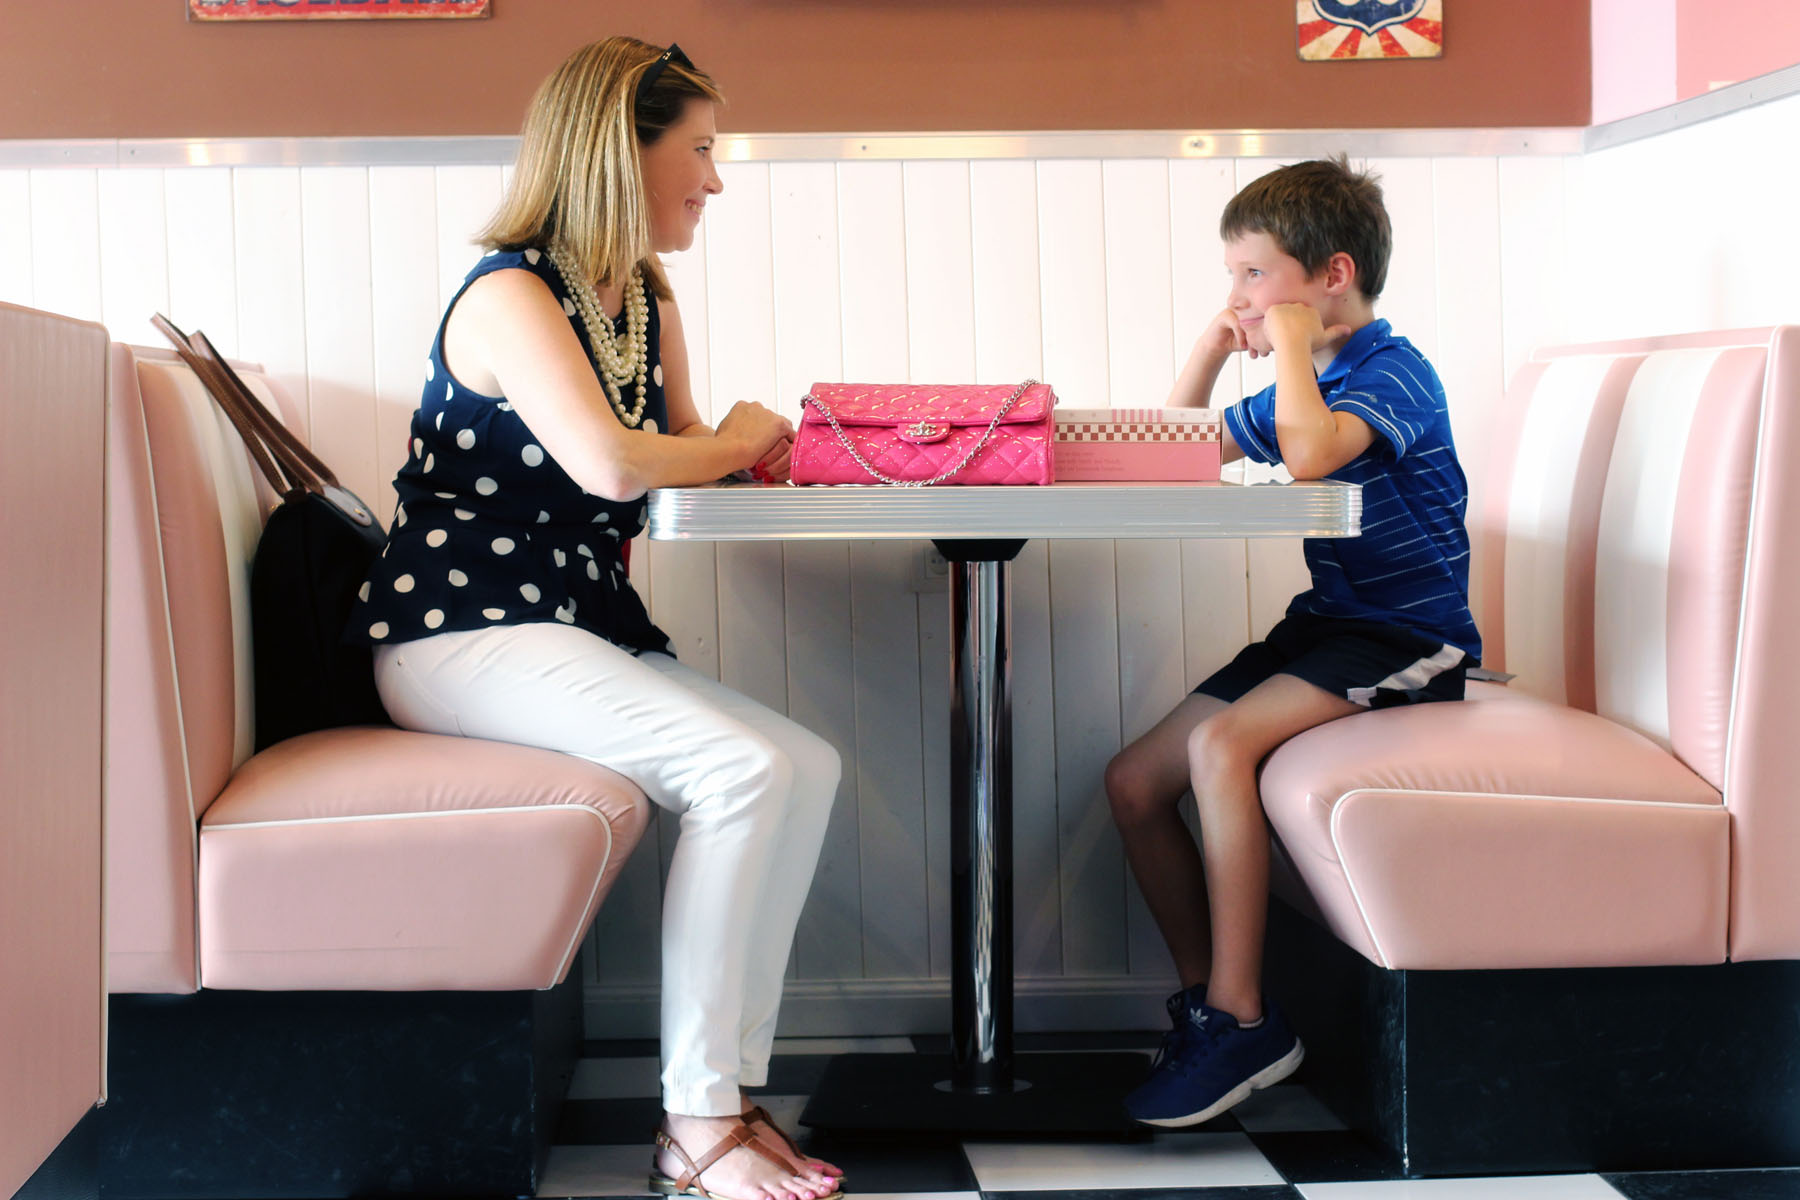 Wendy wearing preppy style clothes that make her feel confidence, sitting in a diner booth with her son.